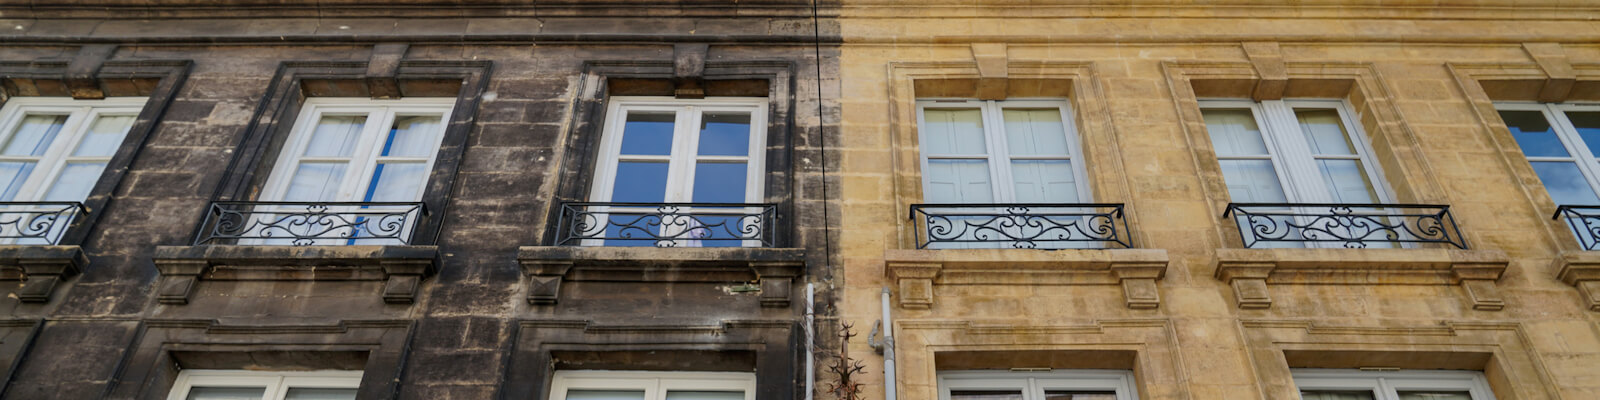 An Outside facades renovation of old building before and after difference between wash clean and dir